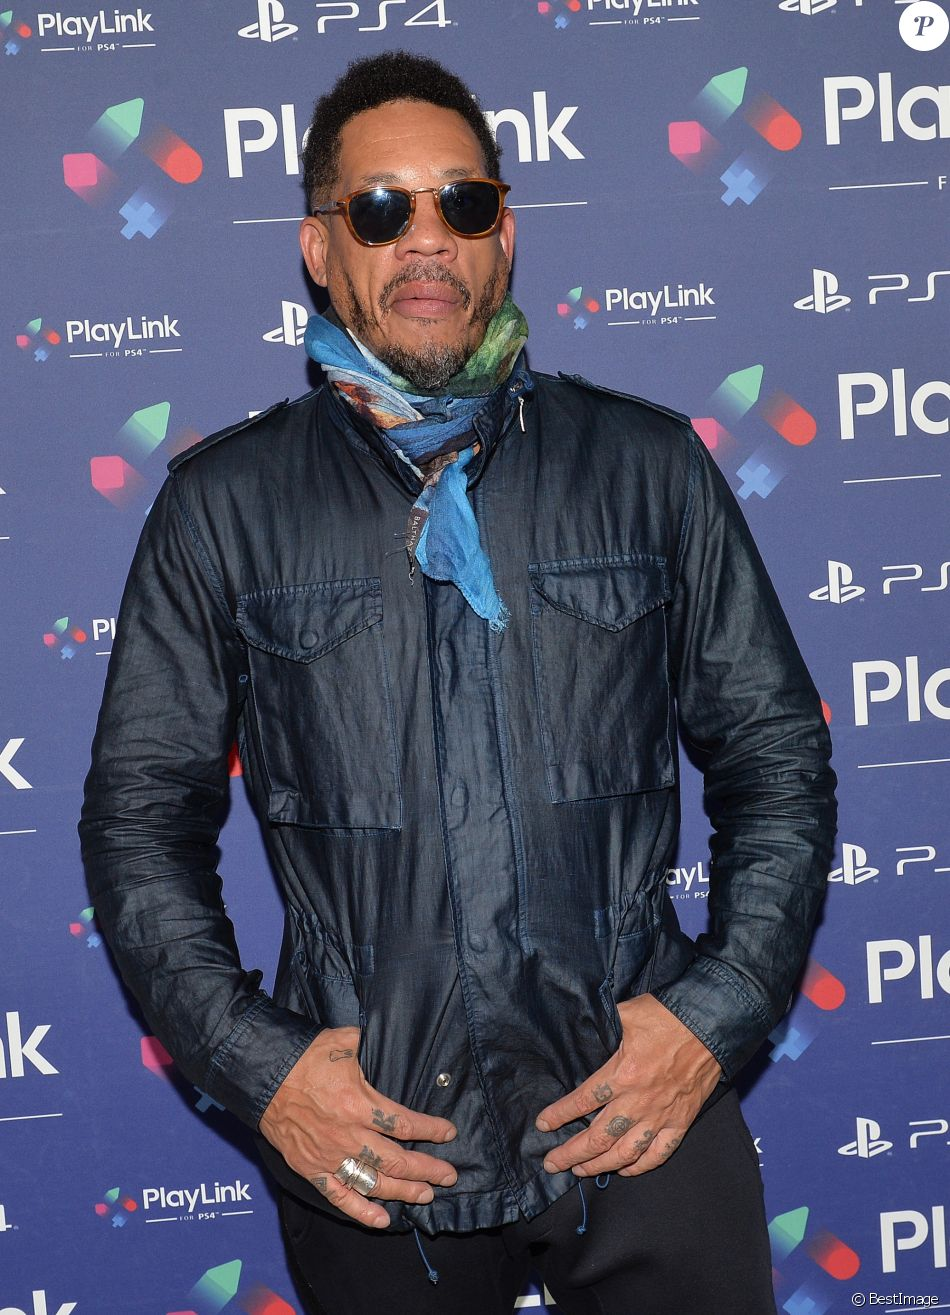 JoeyStarr - Soirée de lancement de PlayLink de PlayStation au Play Link House à Paris, France, le 12 octobre 2017. © Veeren/Bestimage